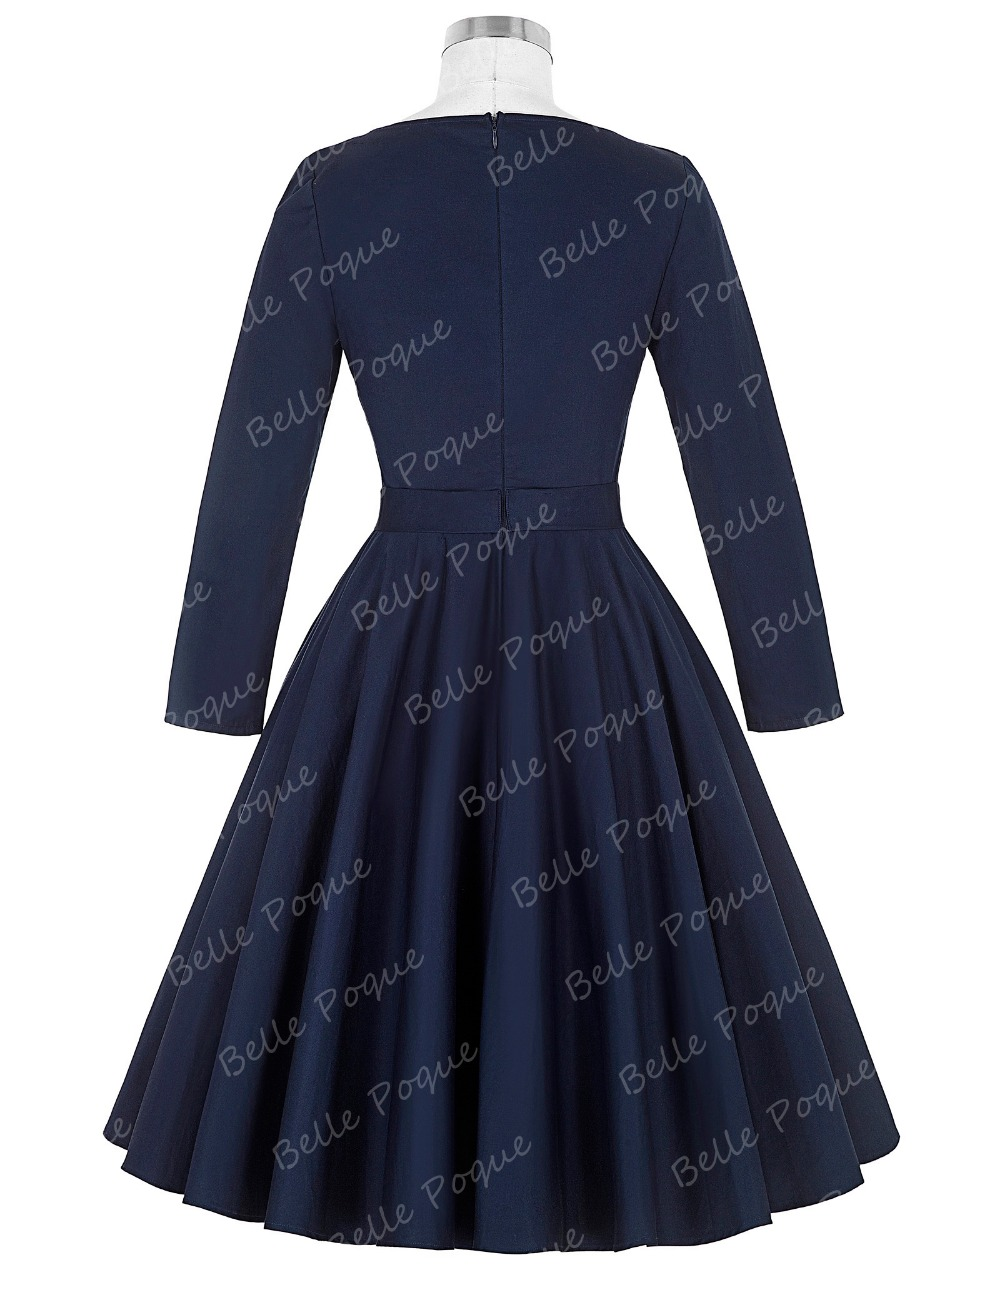 Belle Poque Stock Solid Color Long Sleeve Navy Blue casual vintage clothing dress BP000192-2